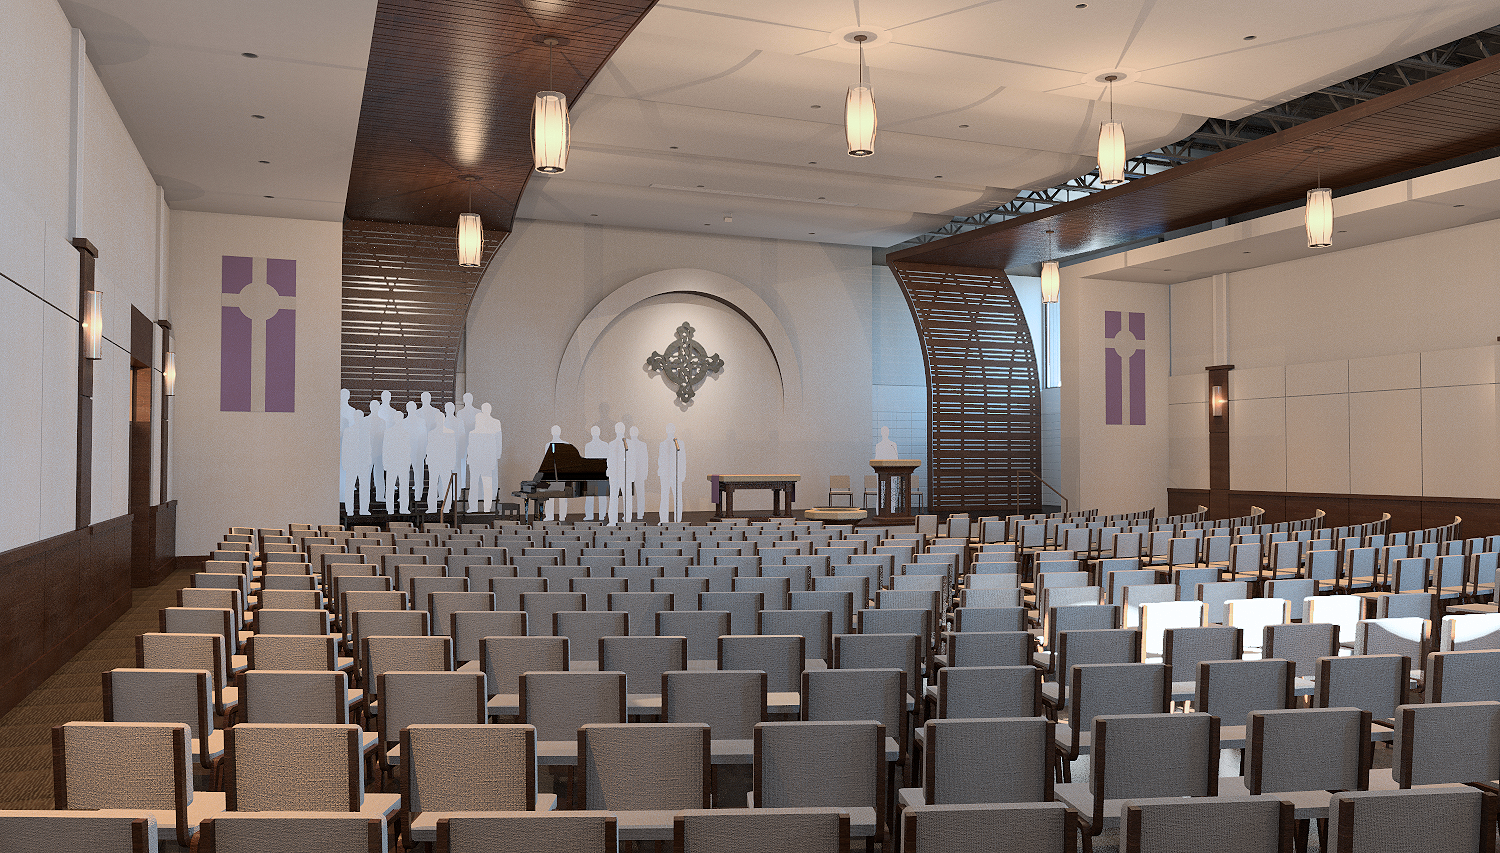 Finished Sanctuary Rendering